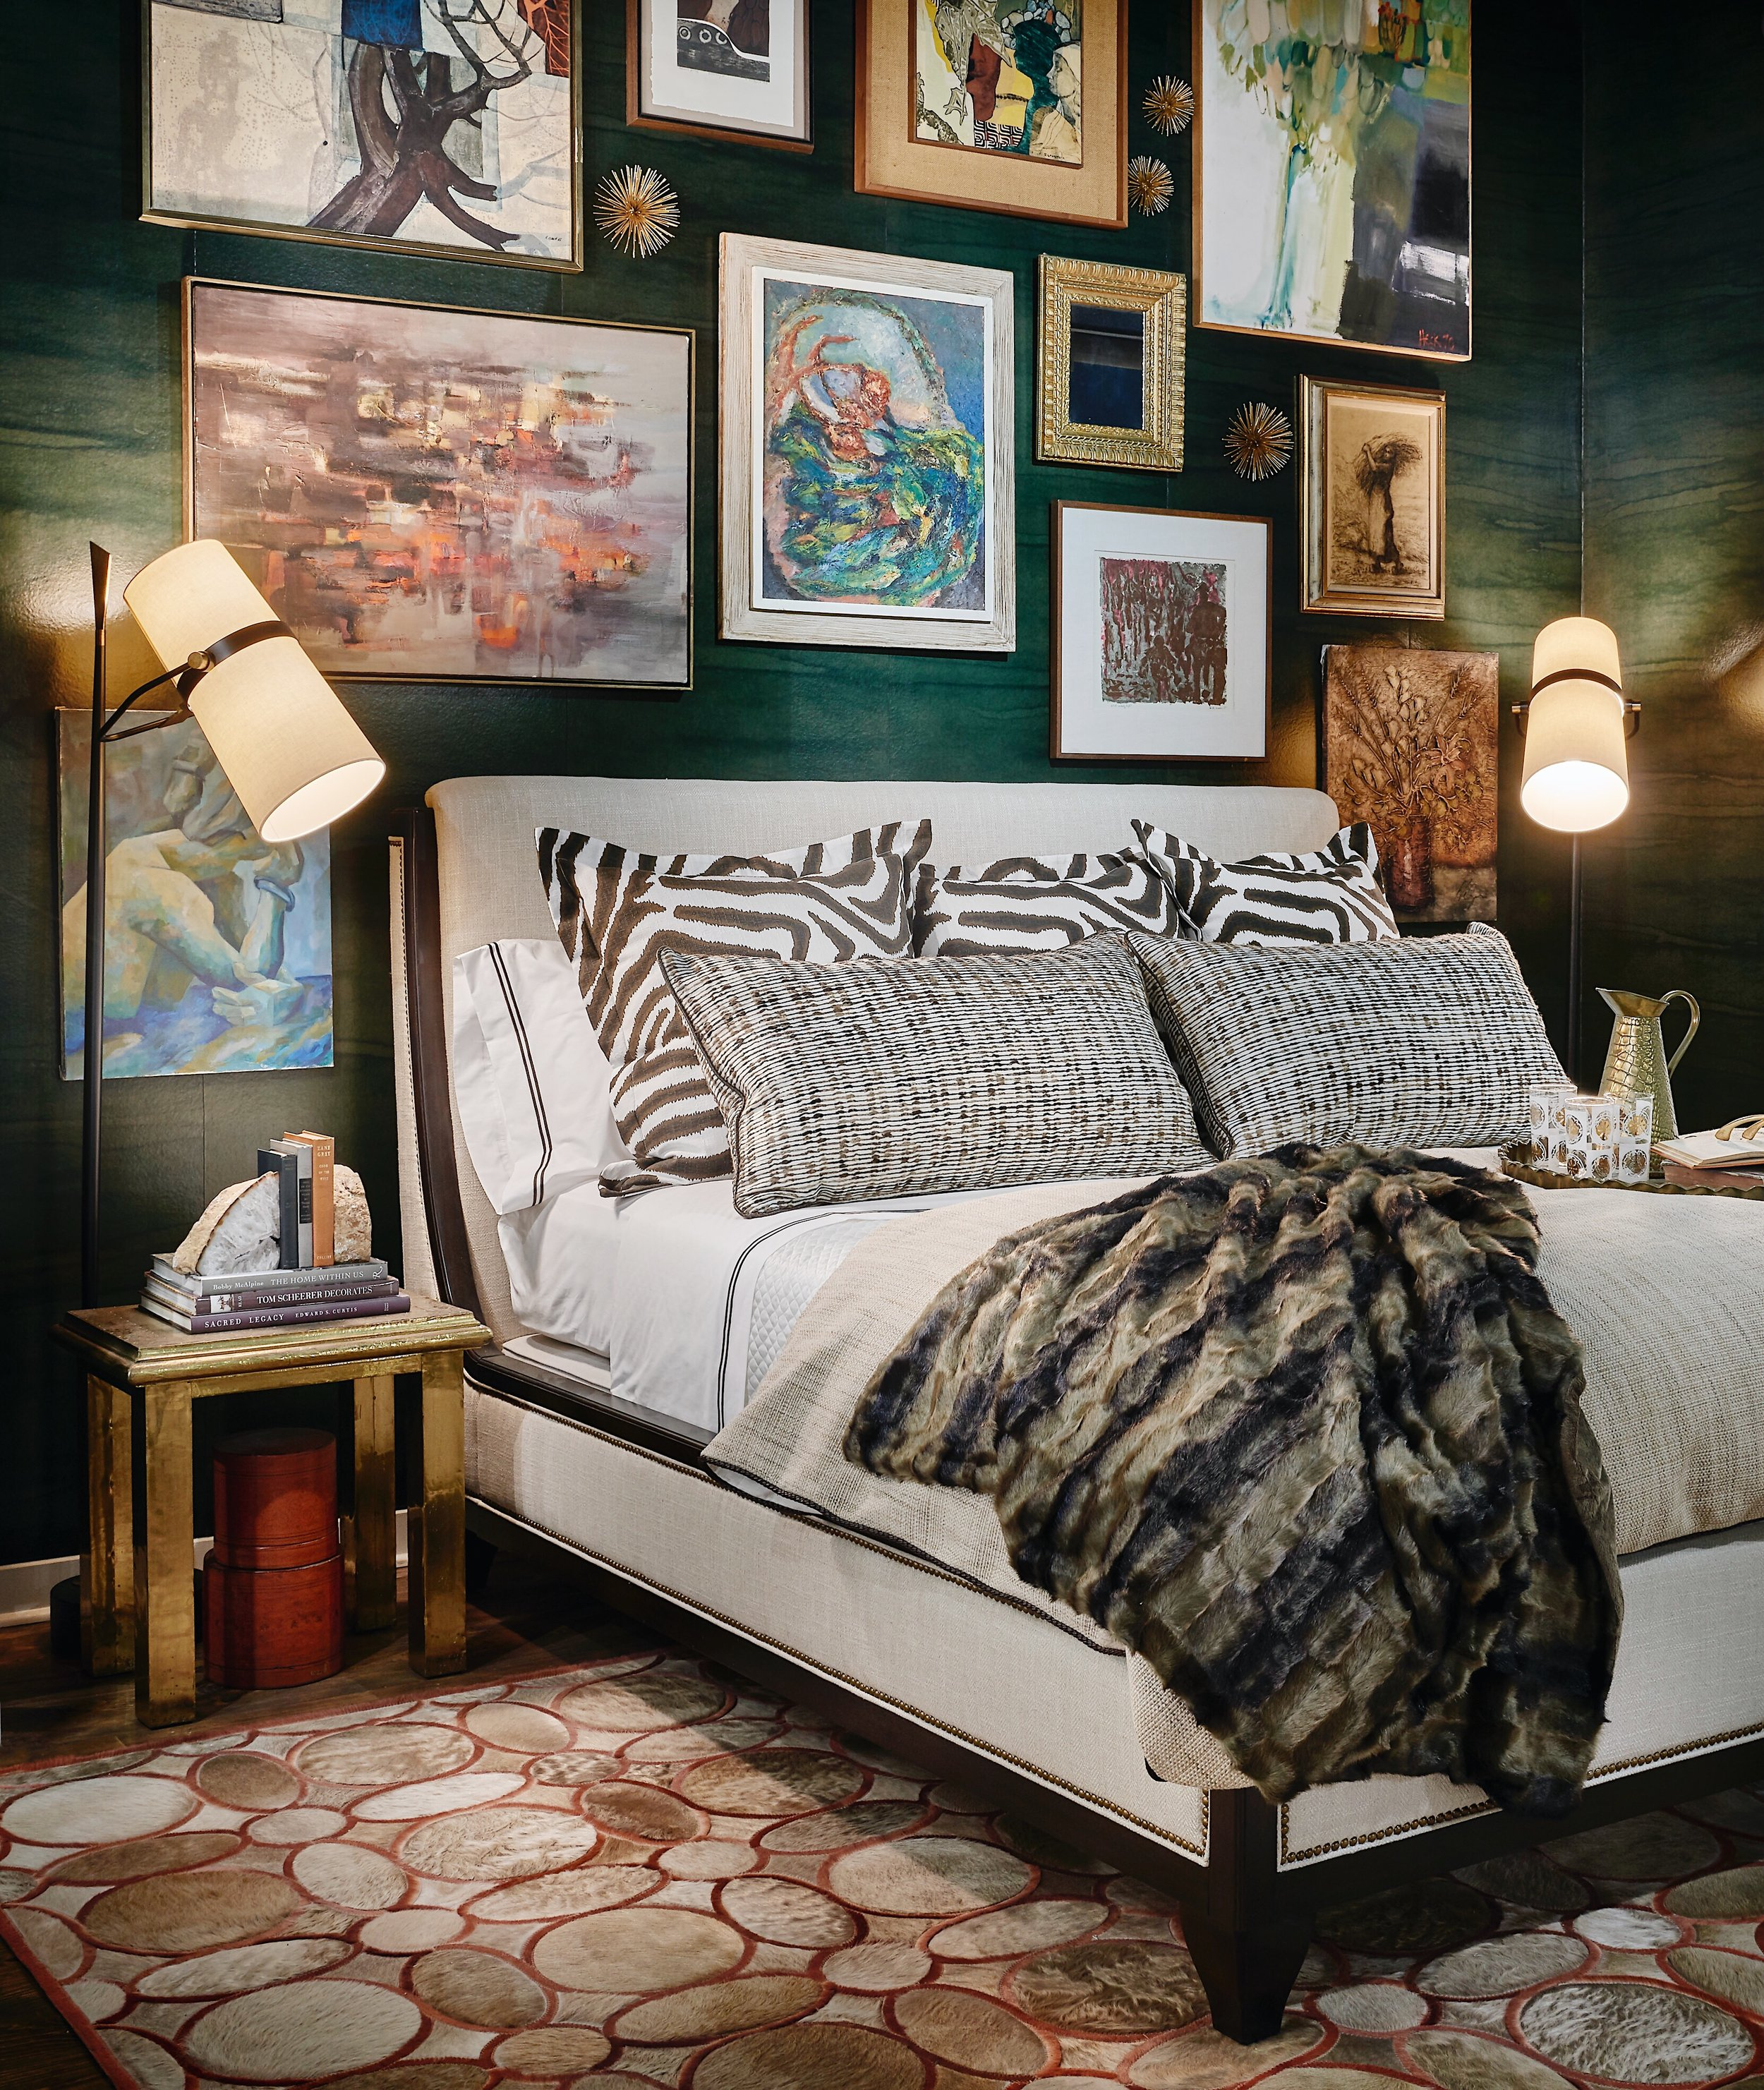 Our bedroom vignette for Dreaming of Design - Special thank you to Chicago Luxury Beds, Maya Romanoff, South Loop Loft, Century Furniture, and Oscar Isberian Rugs!